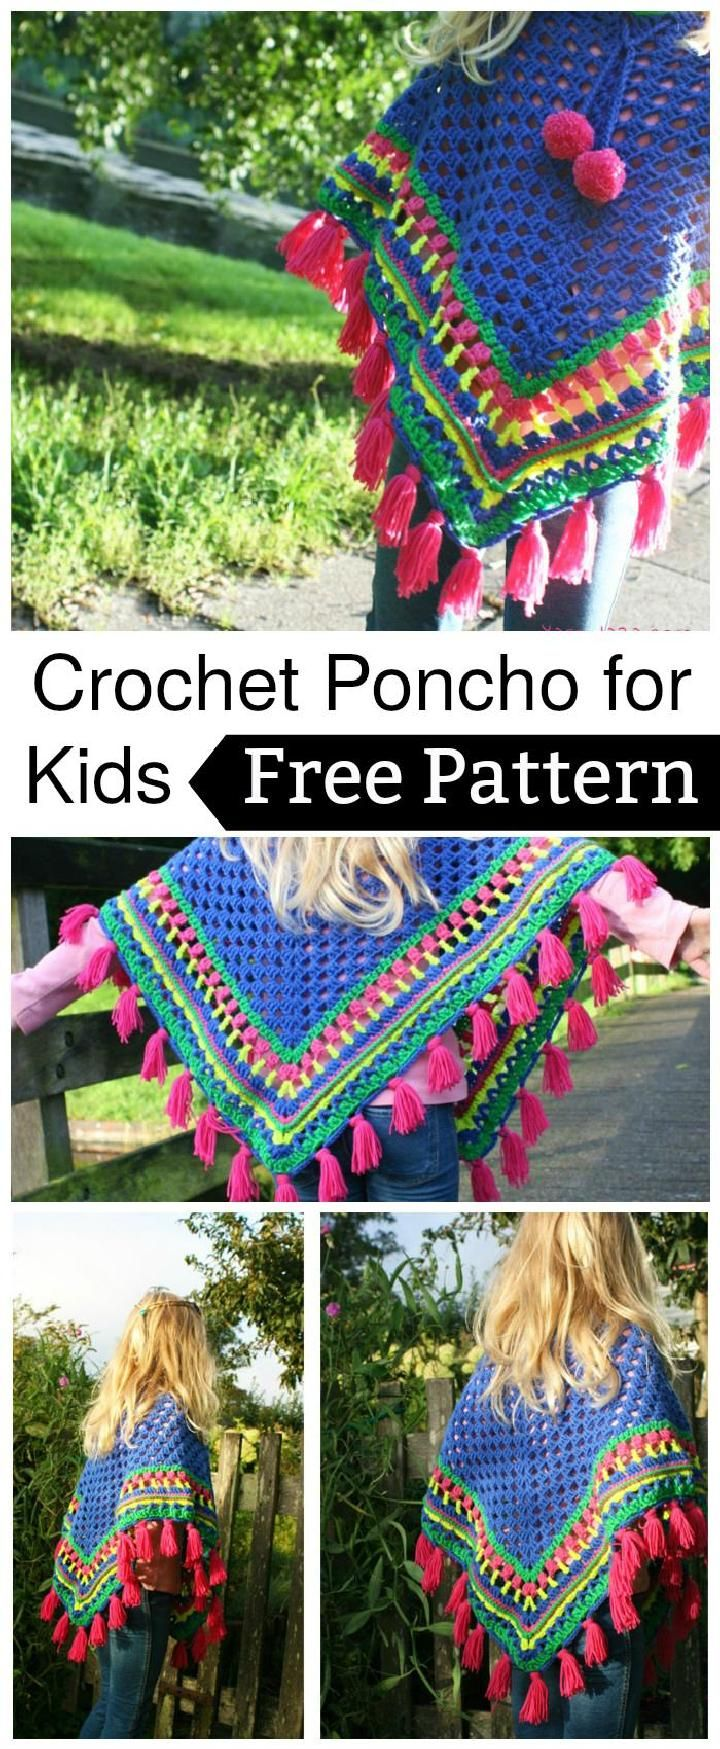 20 free crochet summer poncho patterns for womens page 3 of 3 20 free crochet summer poncho patterns for womens page 3 of 3 bankloansurffo Choice Image